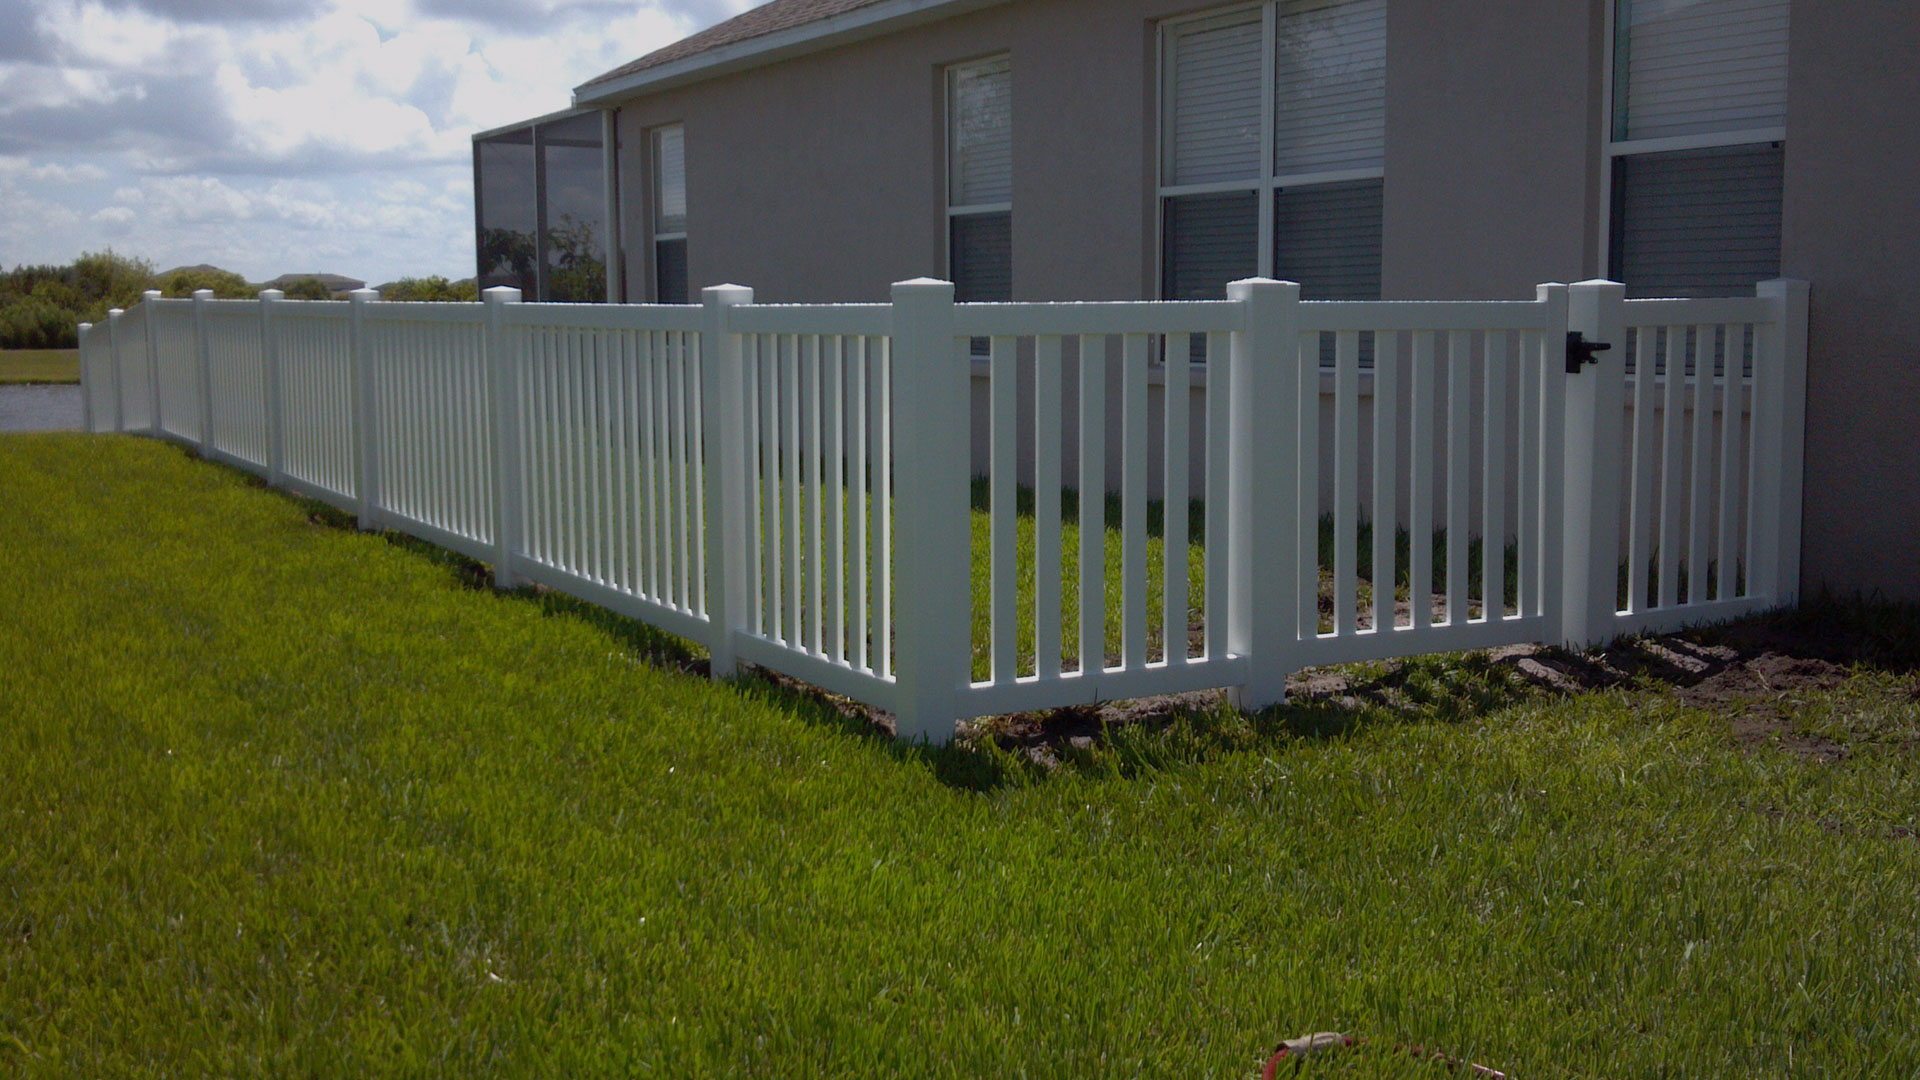 Best fence company serving charlotte, fort mill, and surrounding areas